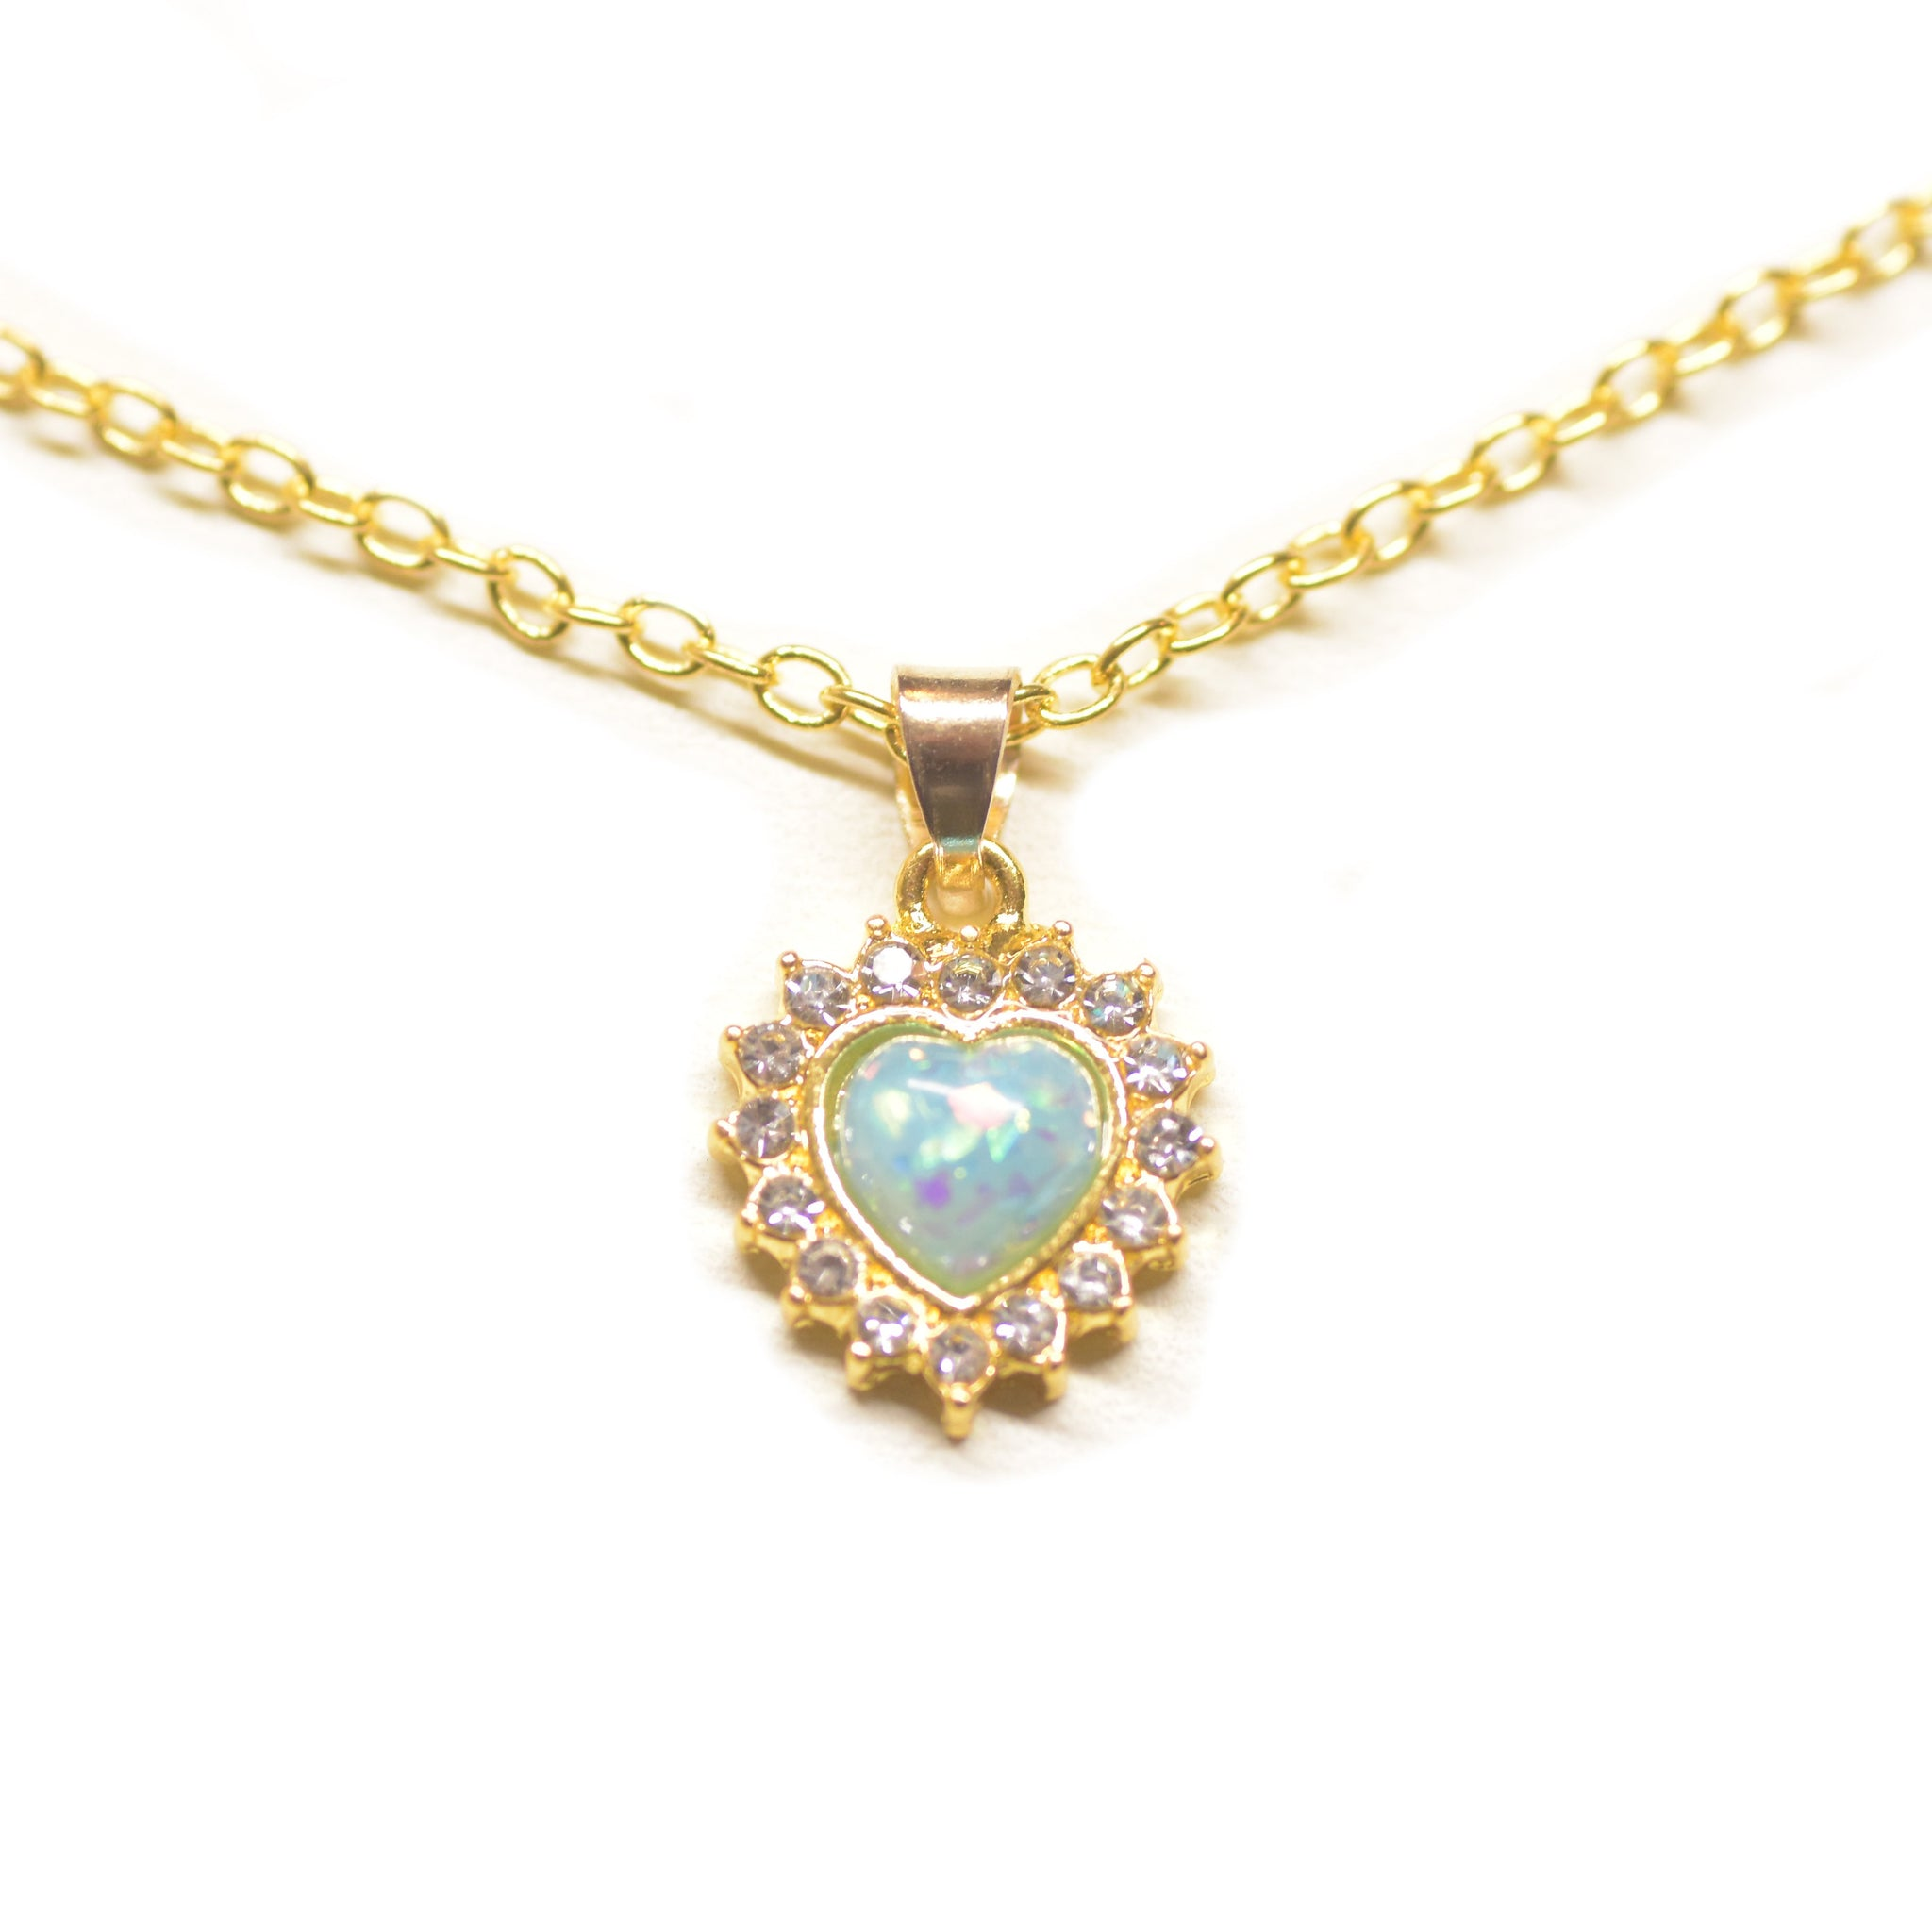 "Opal Created Heart Necklace with Swarovski Crystals 18"" - 14K Gold Plated - Clayton White"